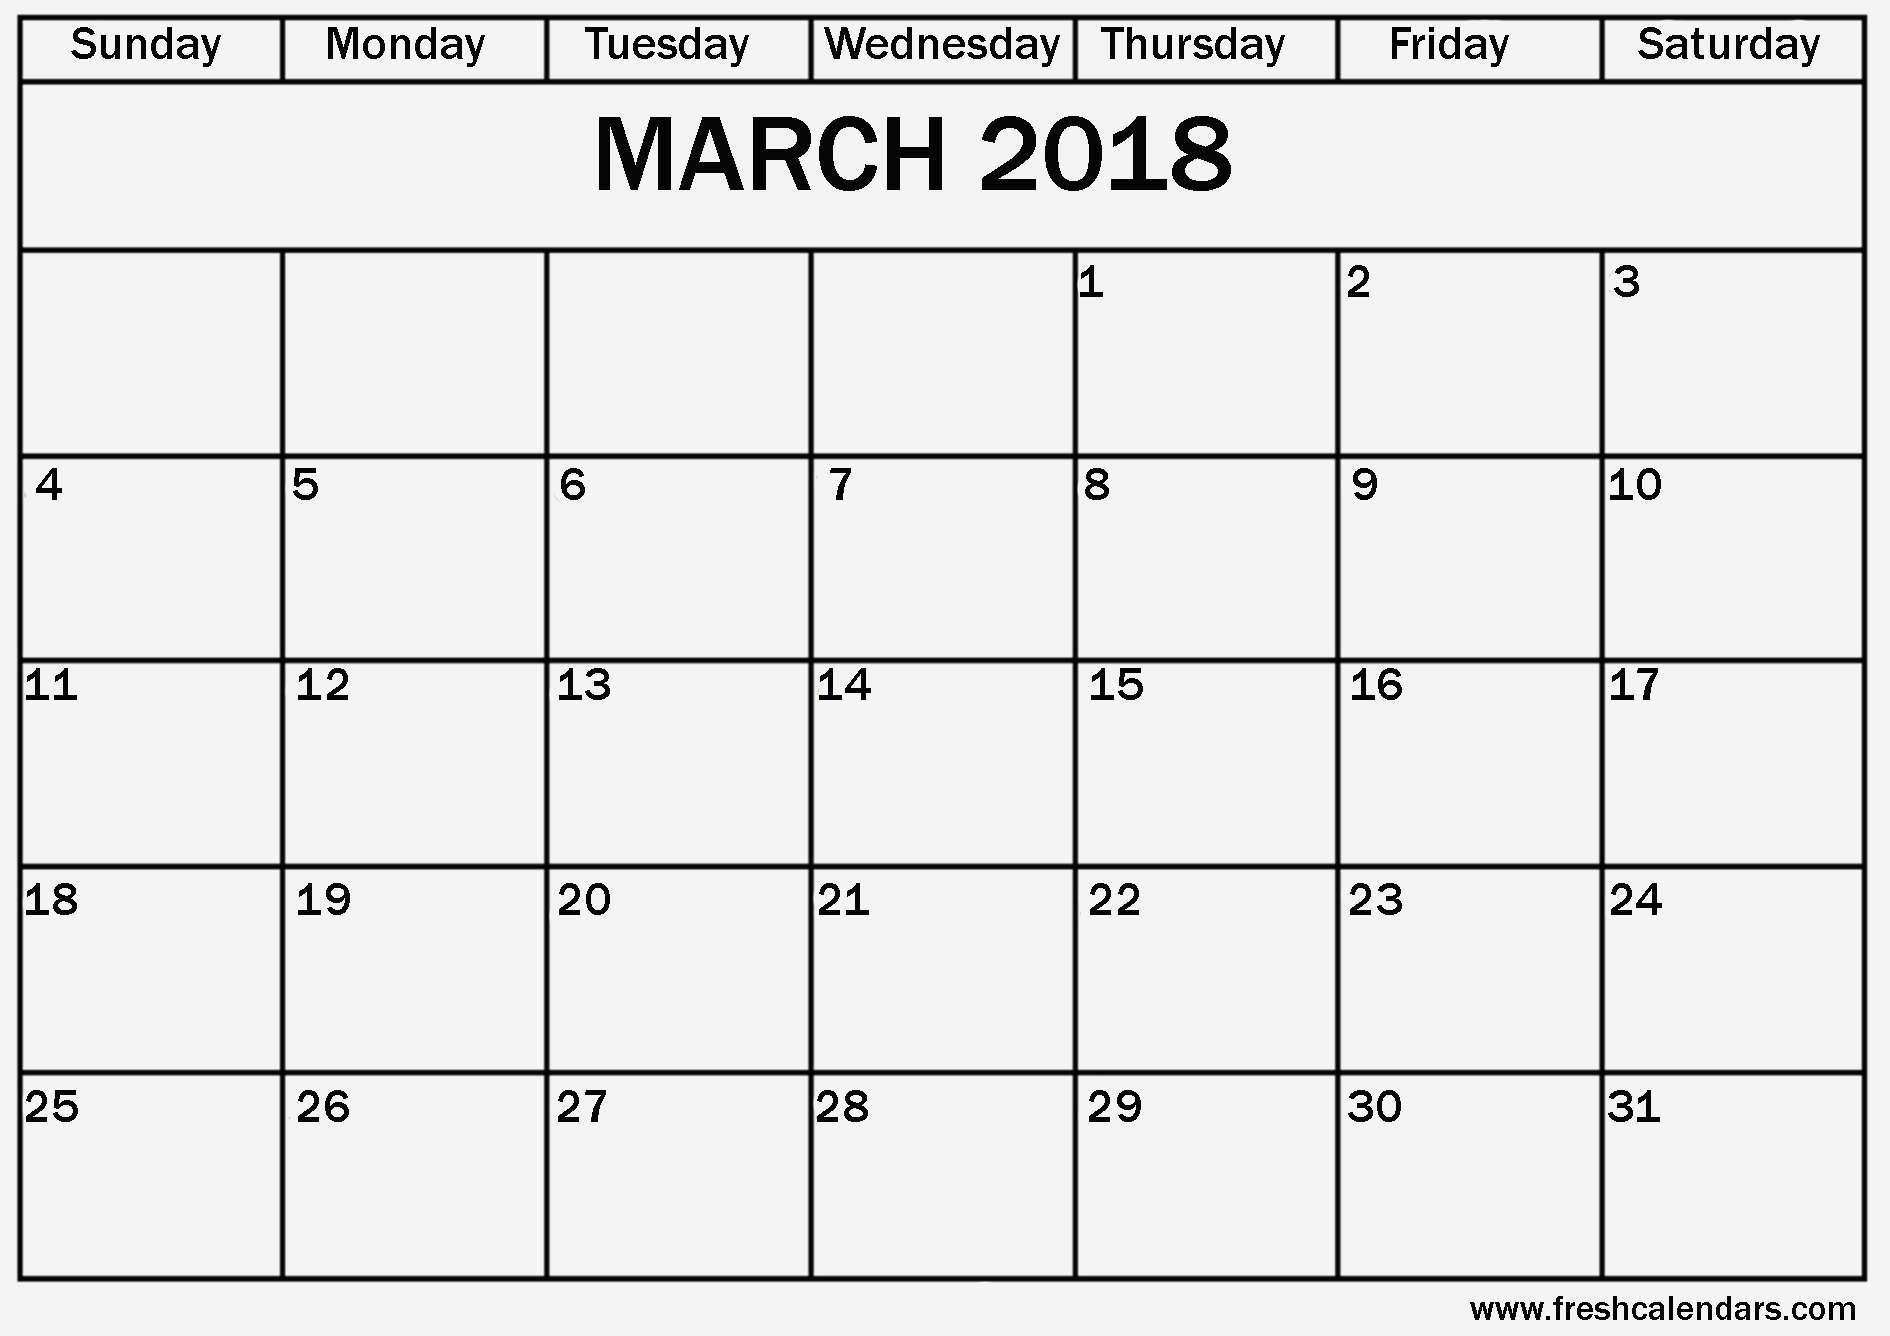 March 2019 Calendar Uk Printable Más Caliente Tips Intended for Free Printable Word Calendar 2019 Calendar Of March 2019 Calendar Uk Printable Más Actual Sat Test Dates Your Best Test Date 2017 2018 2019 2020